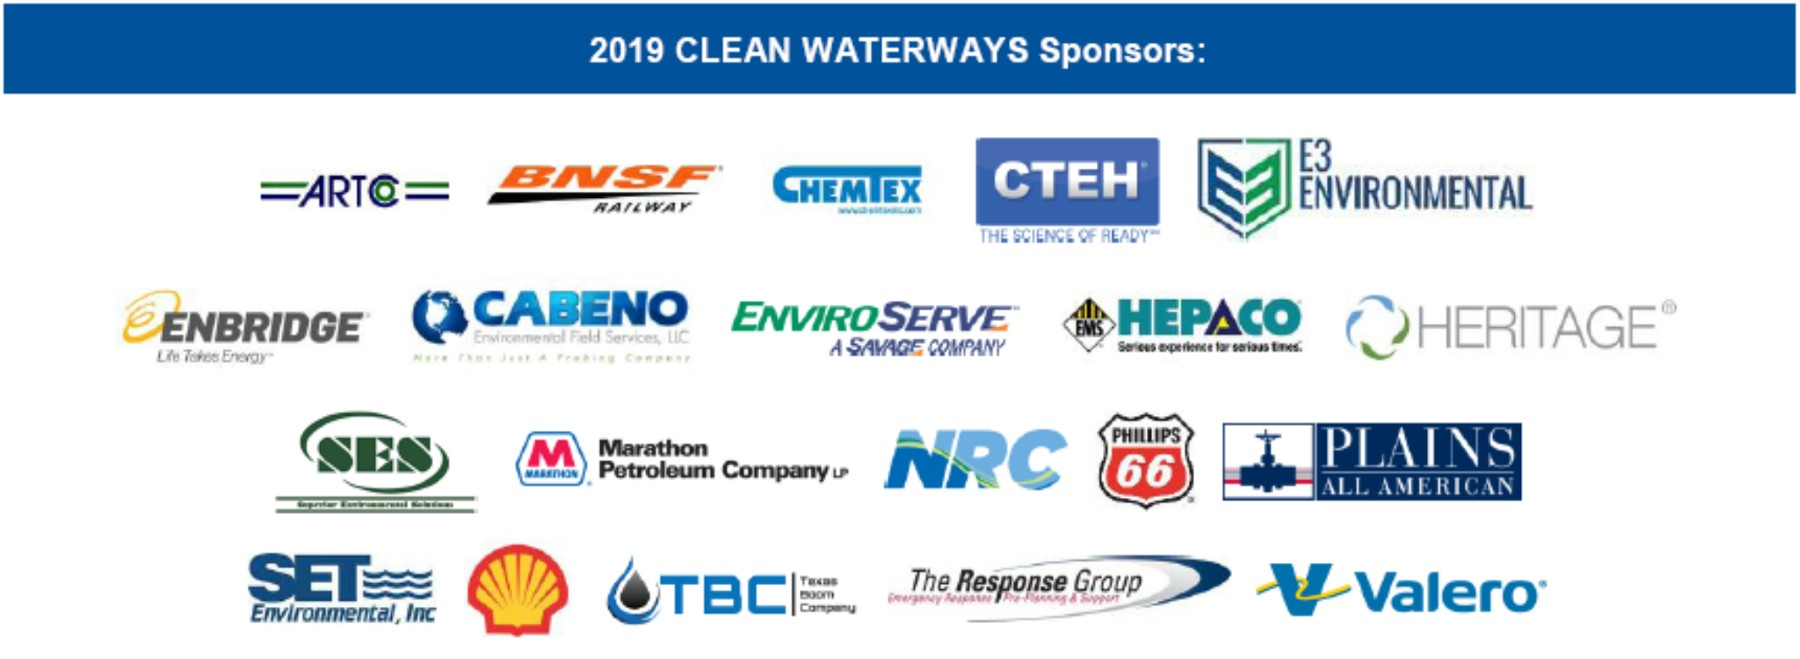 TBC Proud Sponsor of 2019 Clean Waterways